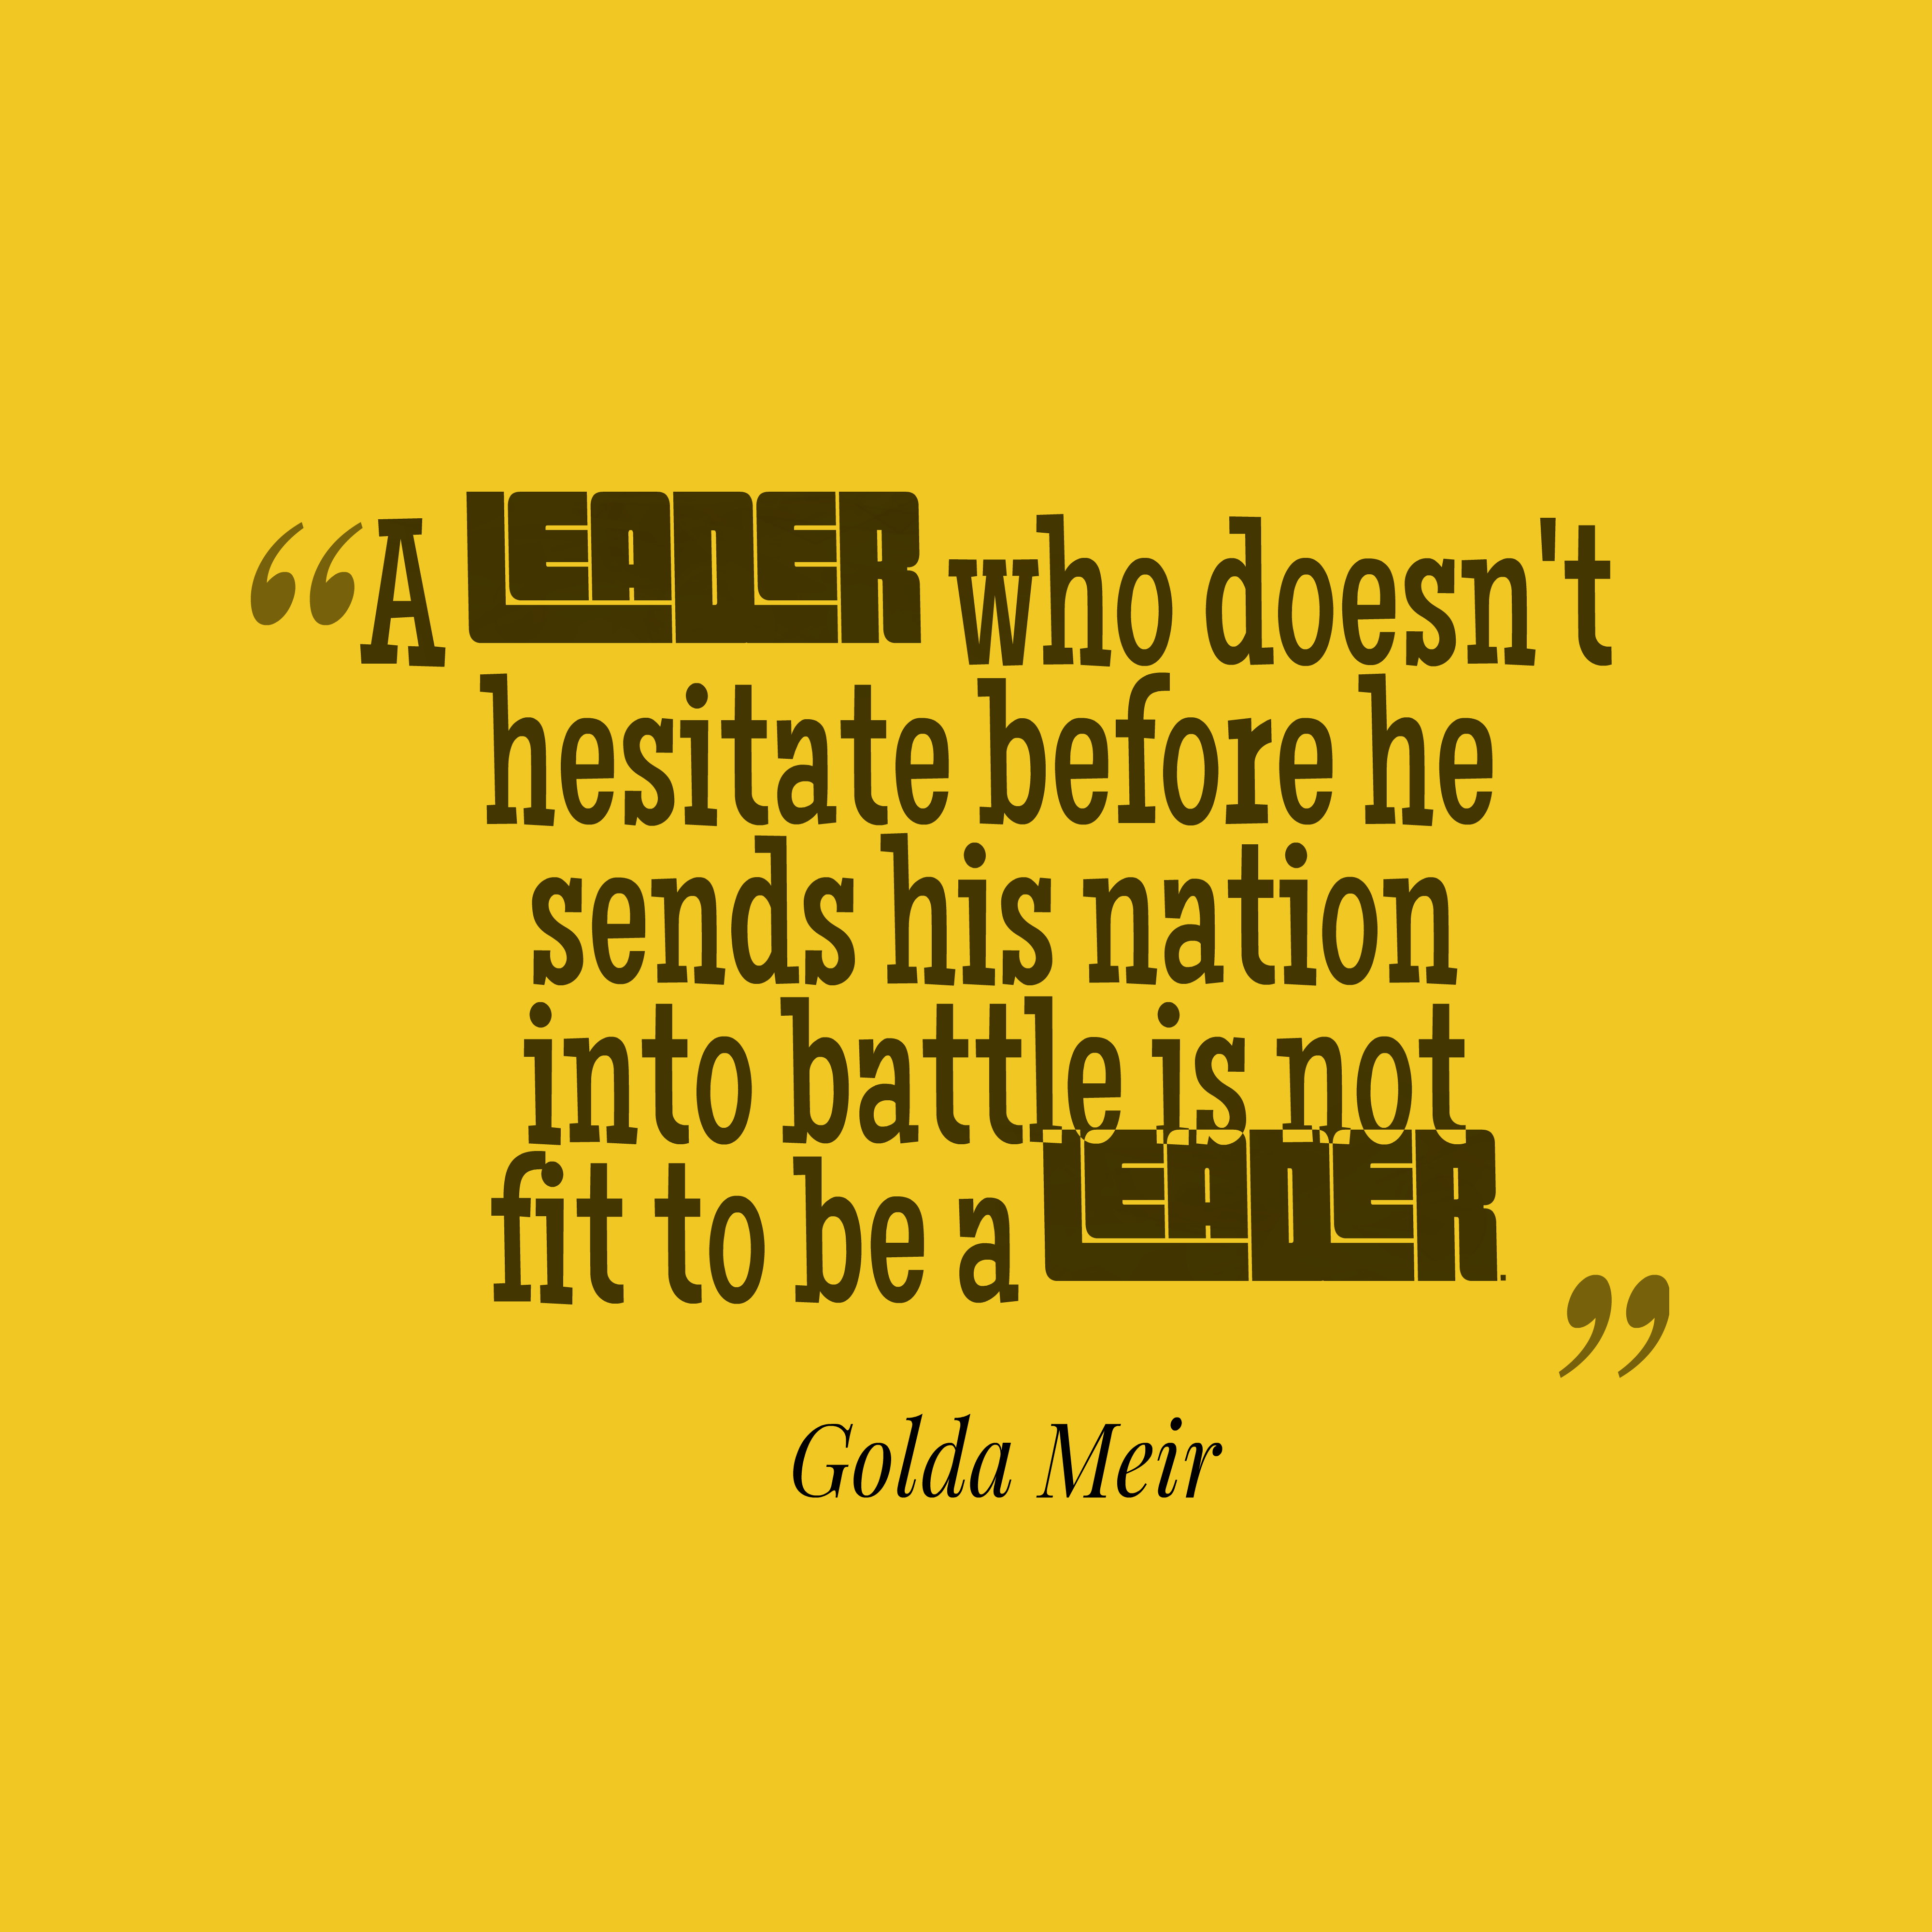 golda meir quotes Quotes Quotes About Friendship Cover Photos